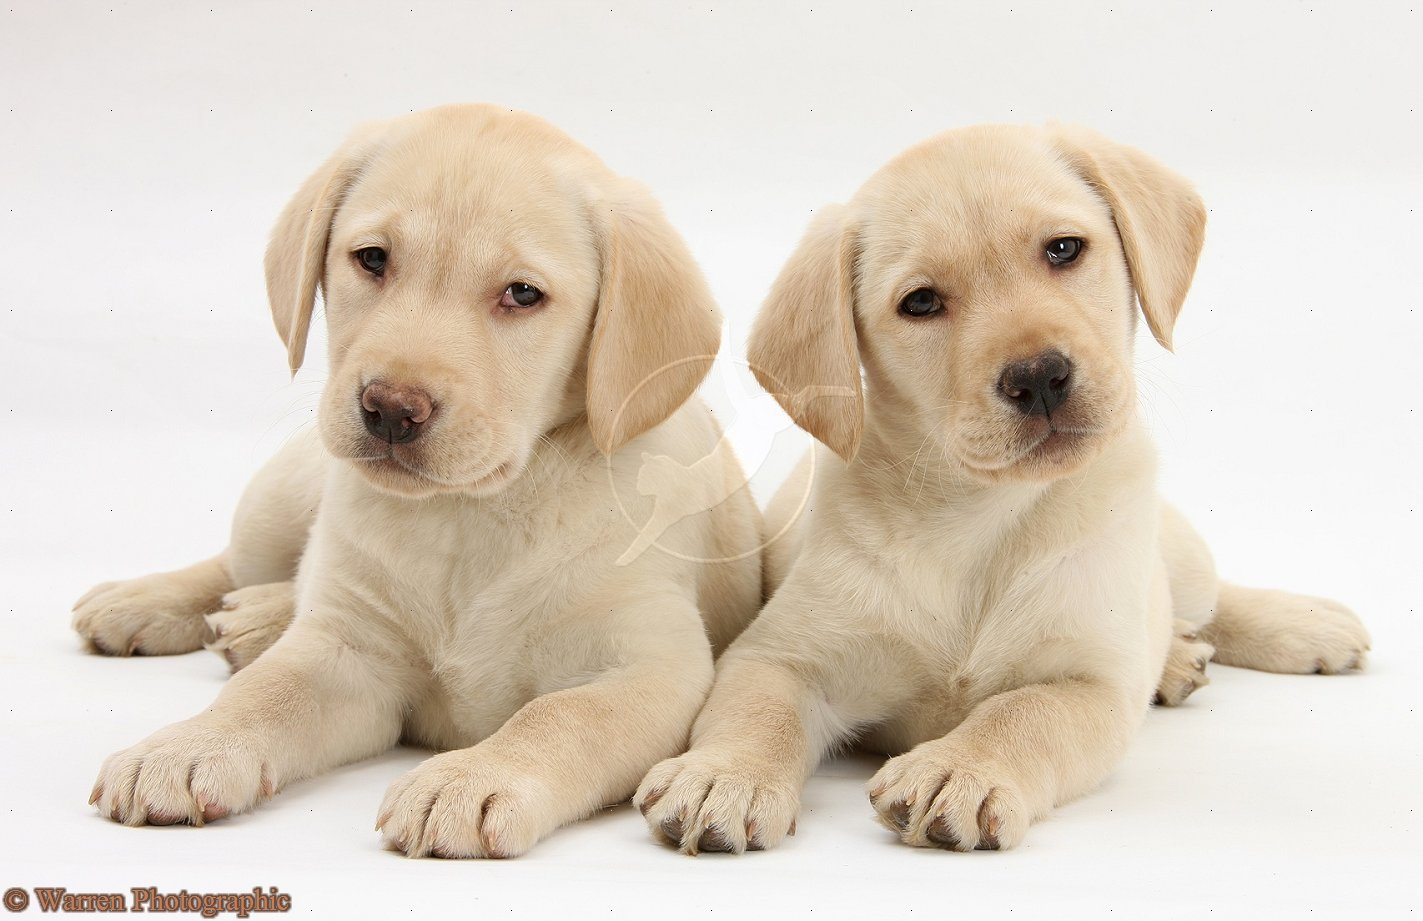 Yellow Labrador Retriever puppies 9 weeks old white background 1423x921